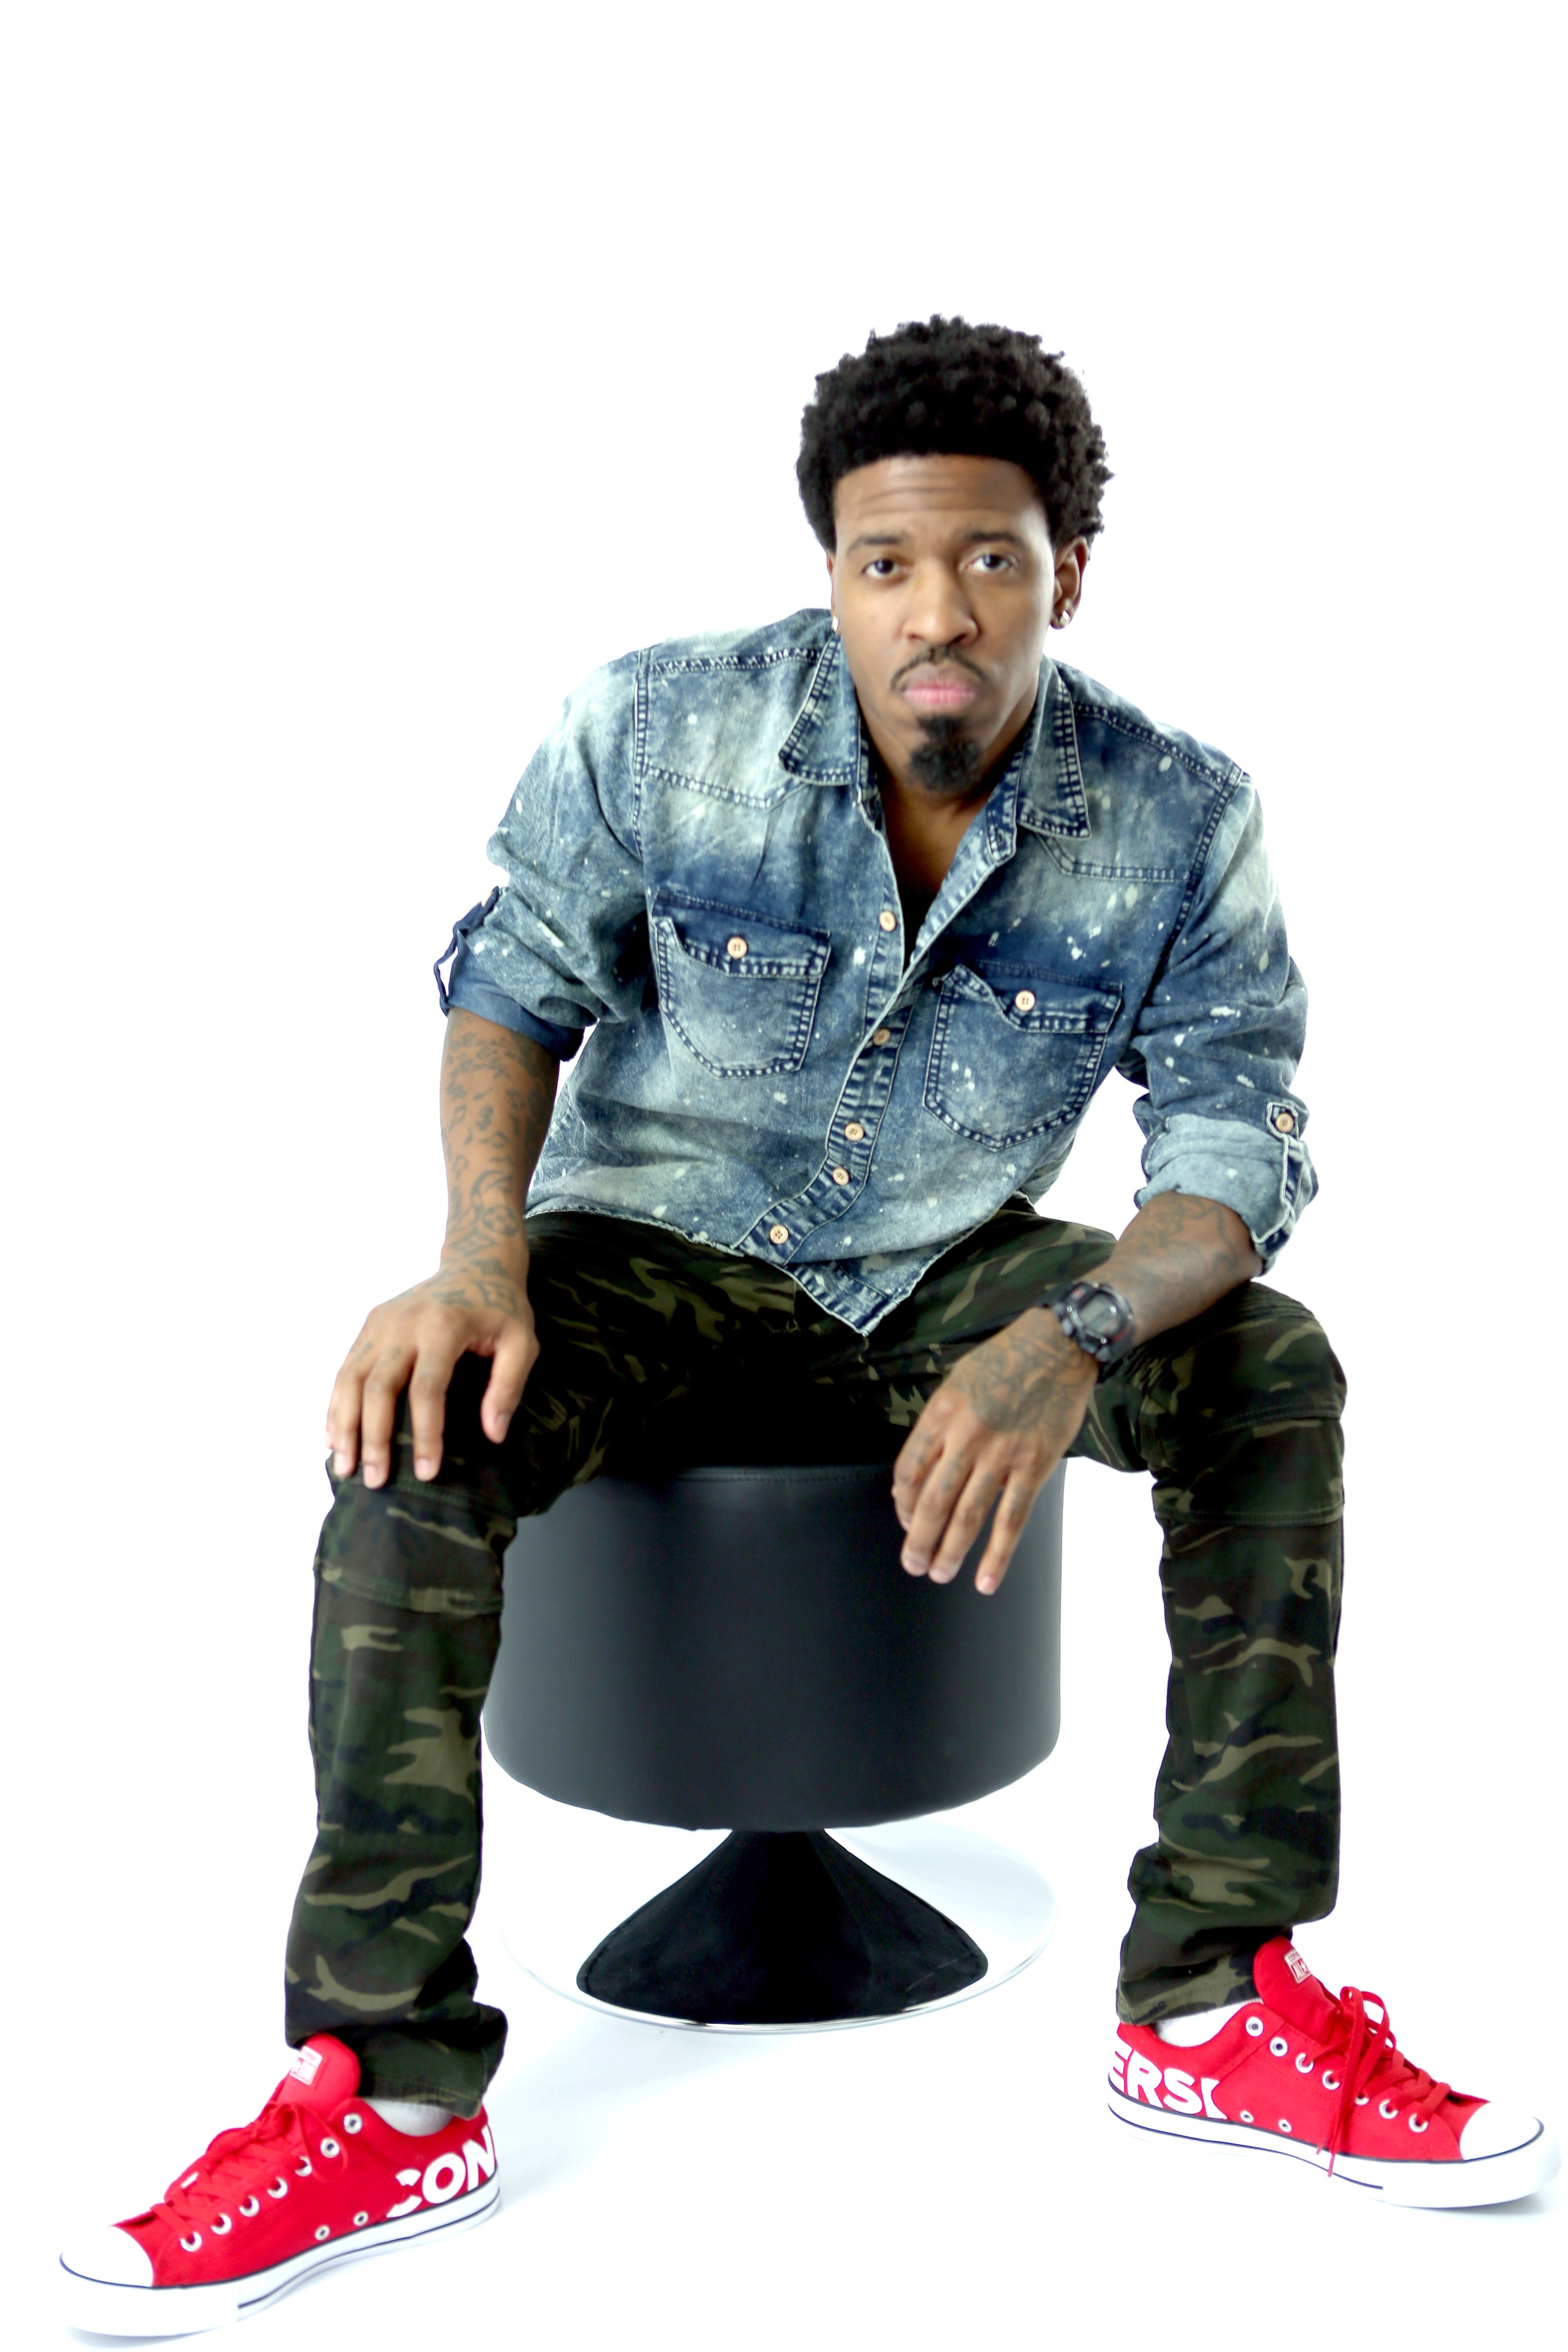 Mista Roe- Shreveport R&B Artist- The R&B King Of Shreveport #HoutsonPhotoShoot